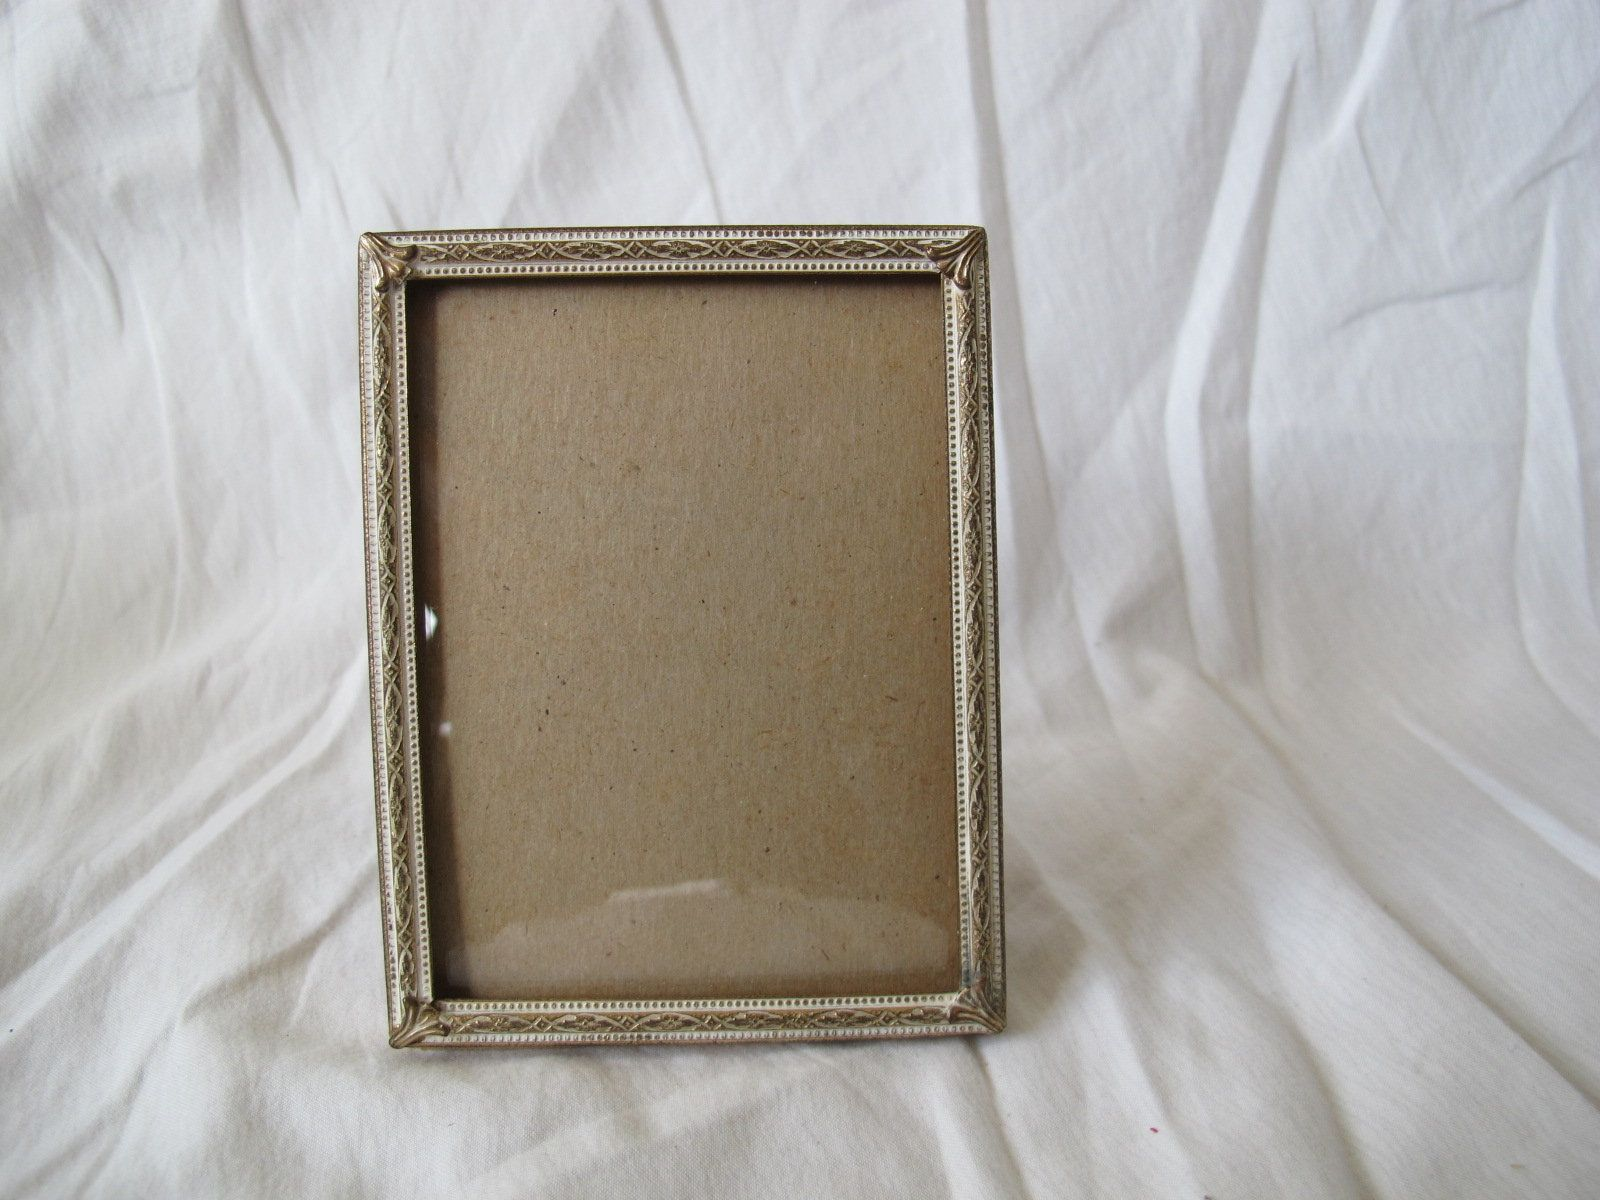 Small Danish Brass Frame 4 X 3 Inches Gold And White Photo Frame With Convex Glass Vintage Picture Frames Brass Frame White Photo Frames